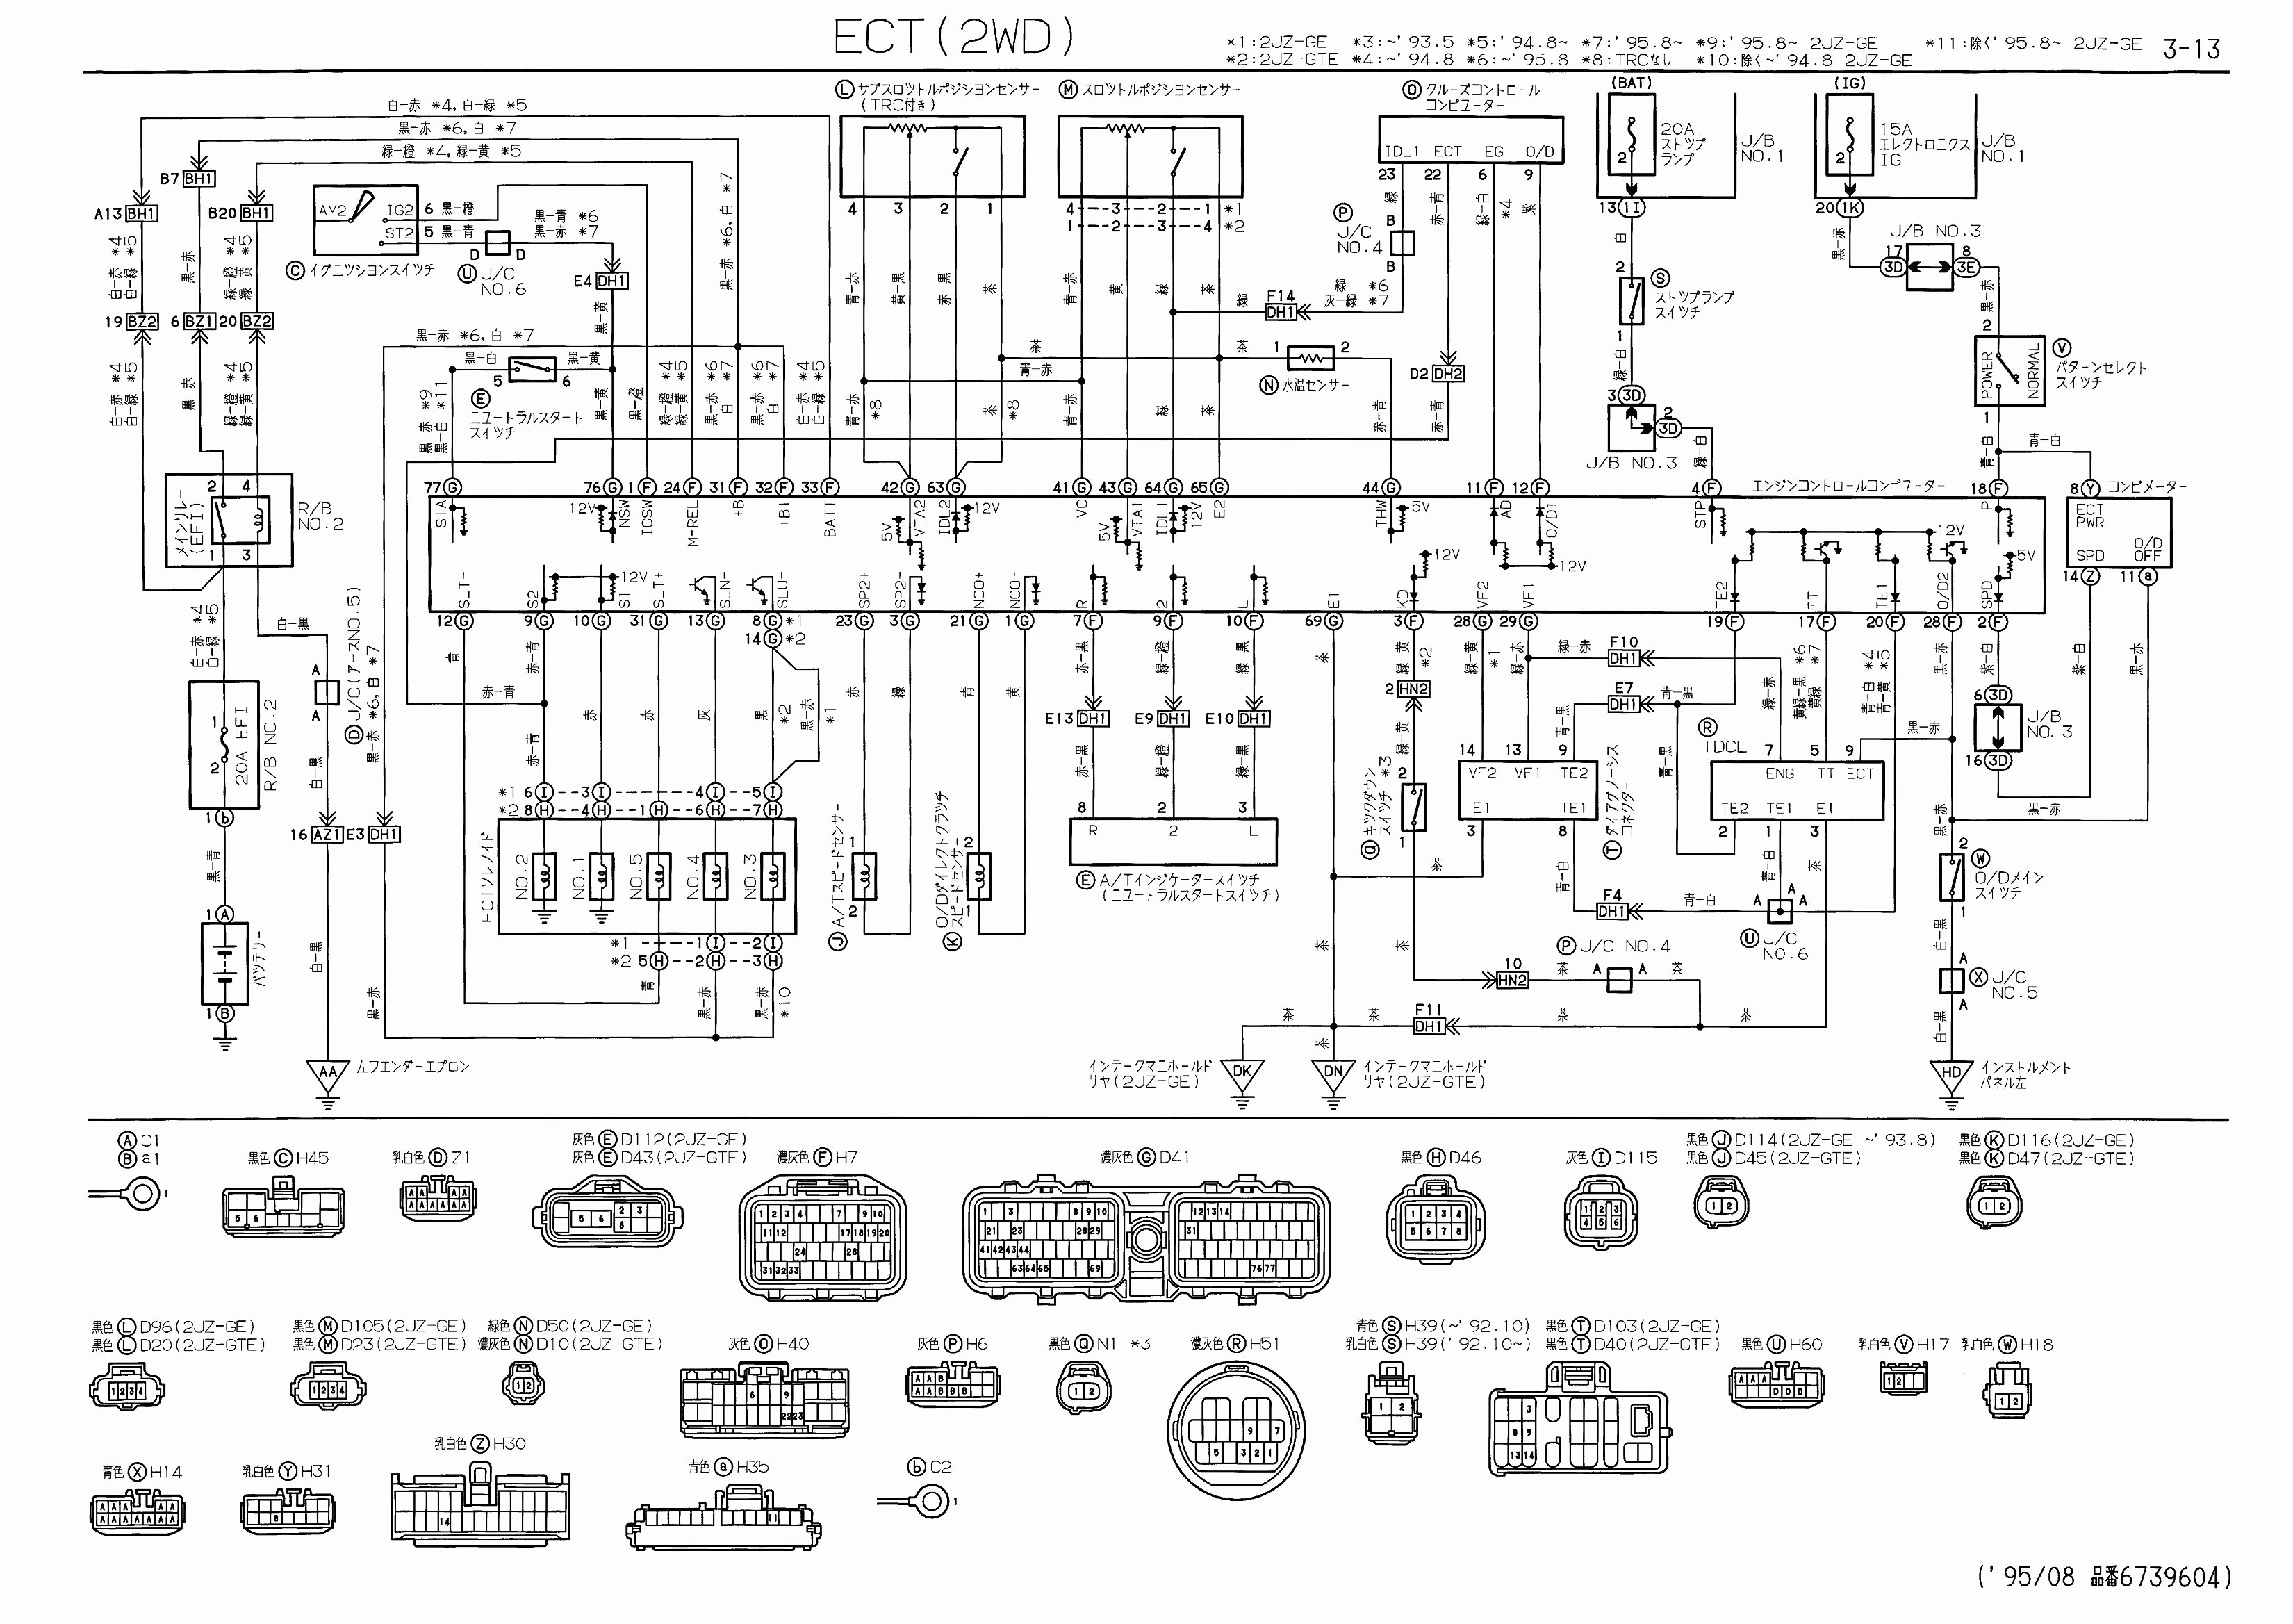 Infiniti Q45 Engine Diagram 1993 Infiniti J30 Engine Partment Fuse Box Diagram Wire Center • Of Infiniti Q45 Engine Diagram